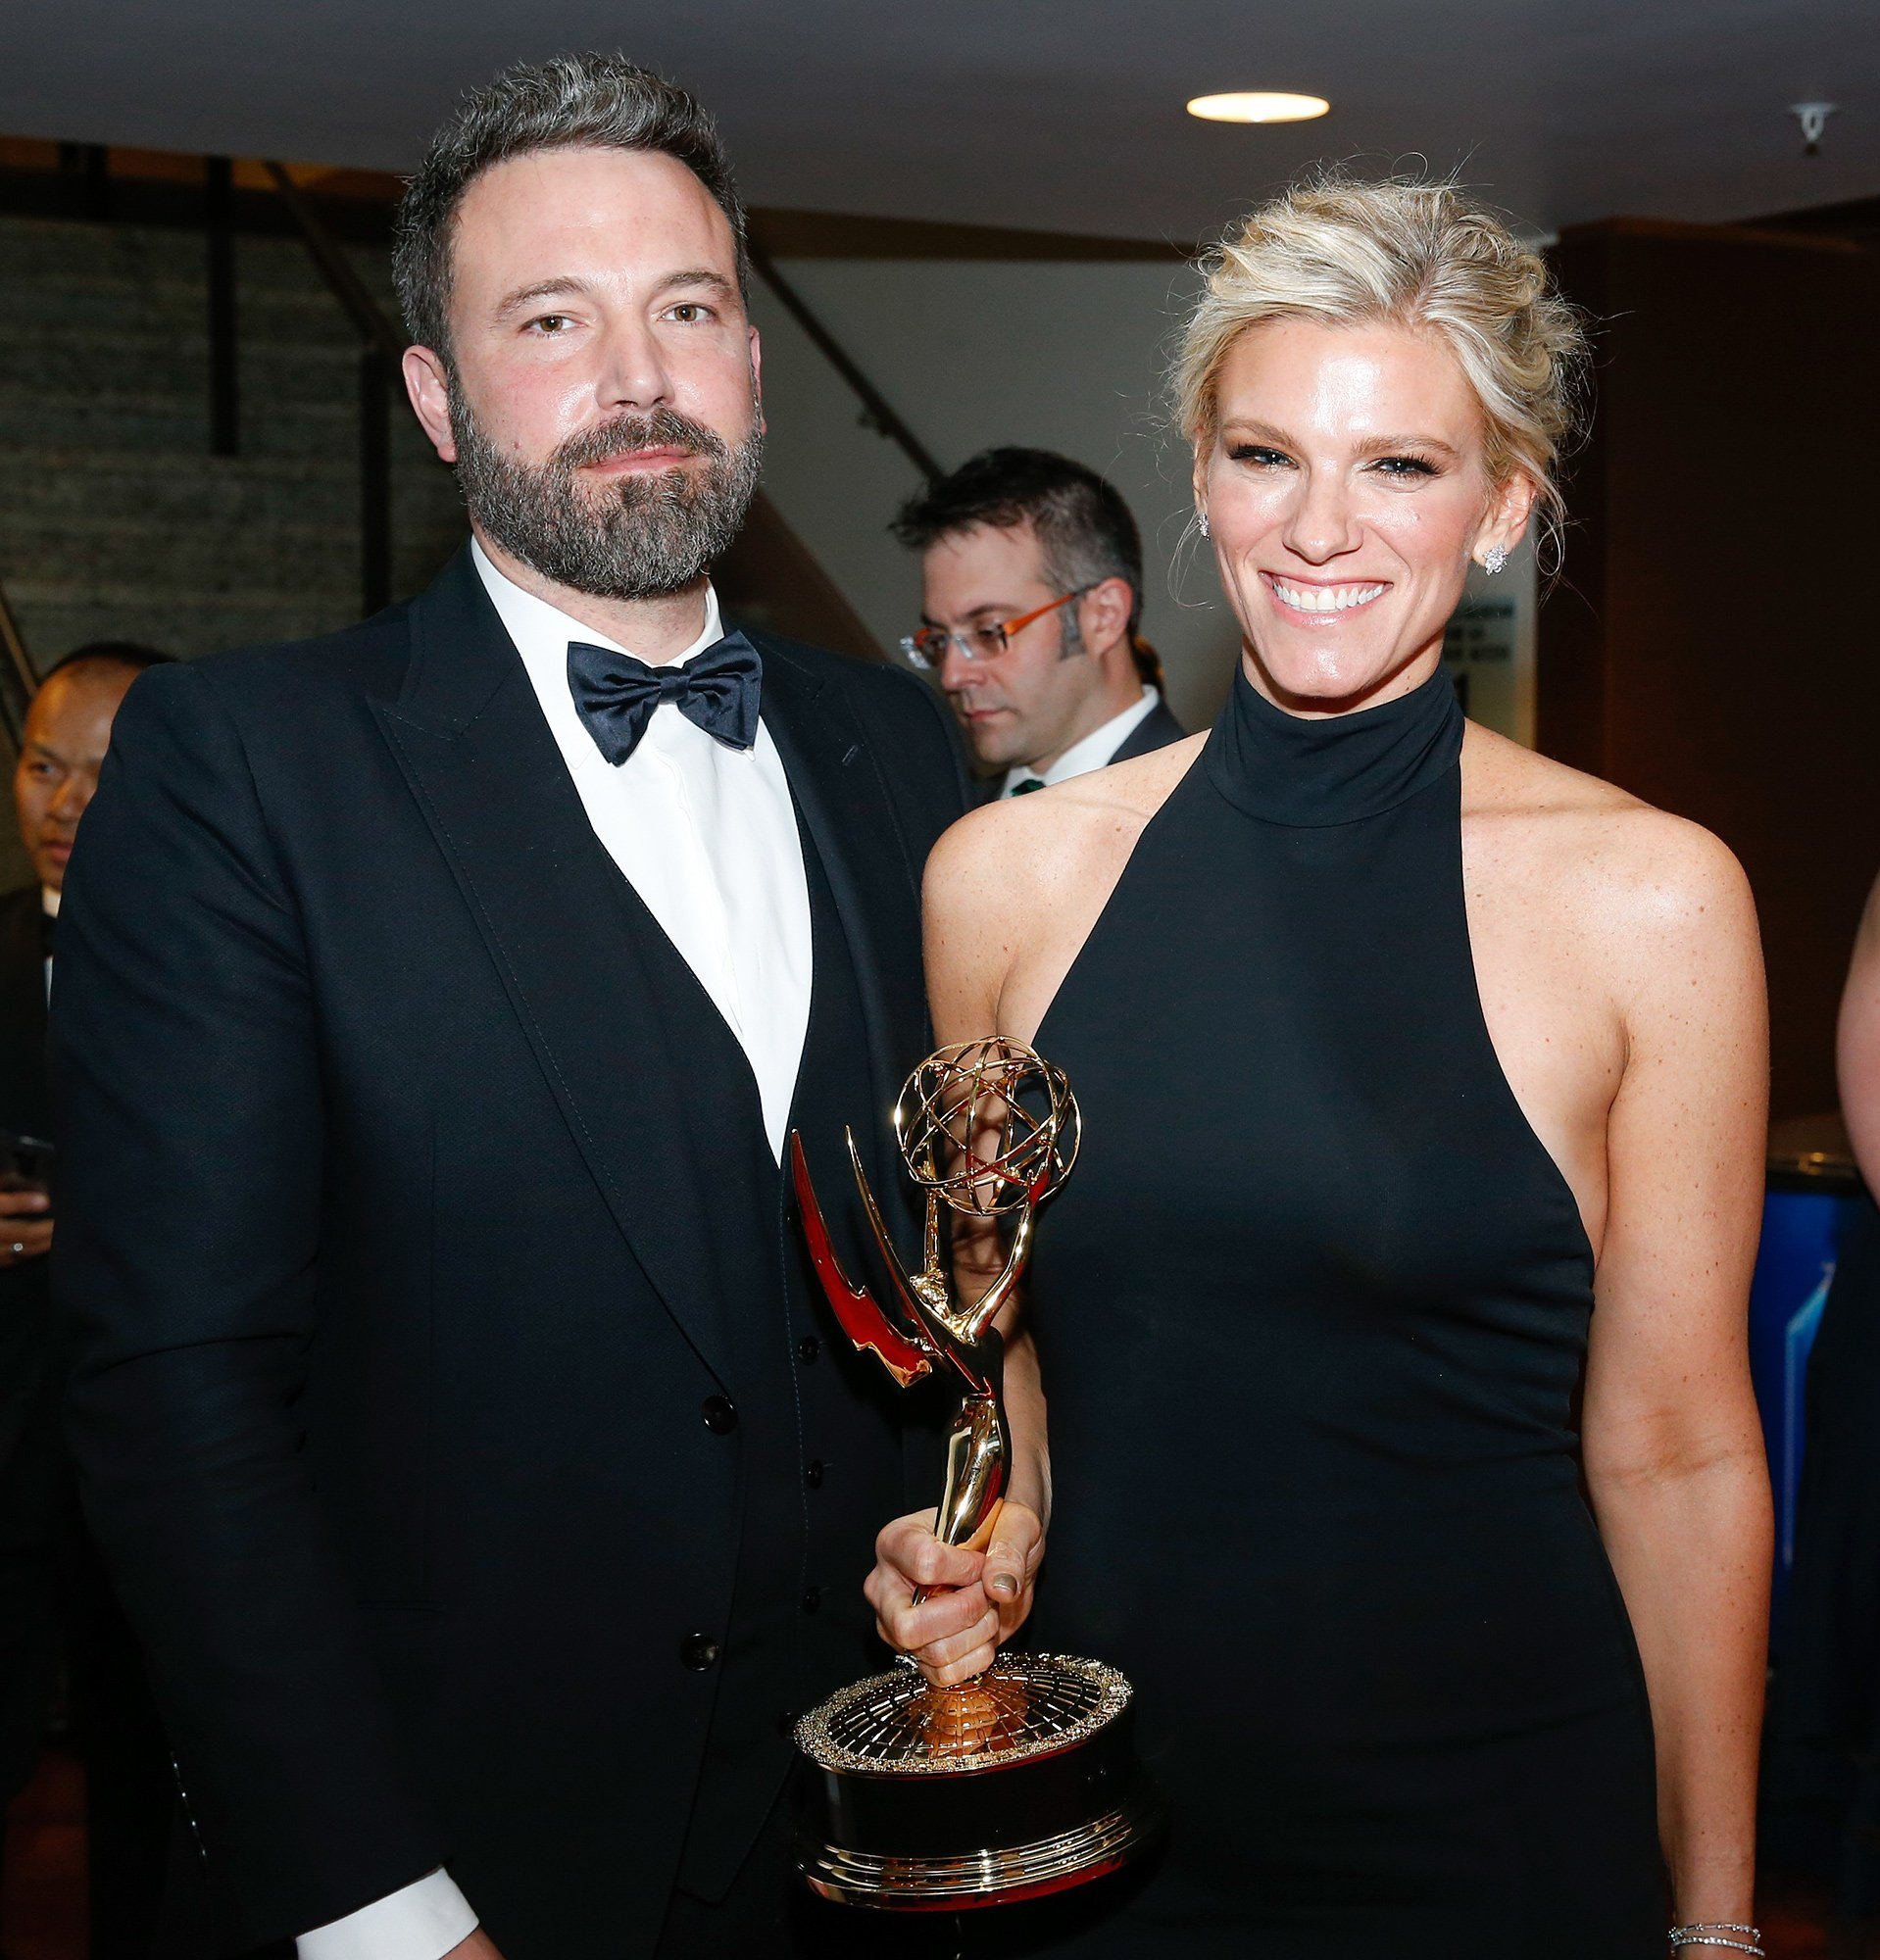 Why Lindsay Shookus Broke Up with Ben Affleck: 'She Had to Let Him Hit Bottom,' Says Source